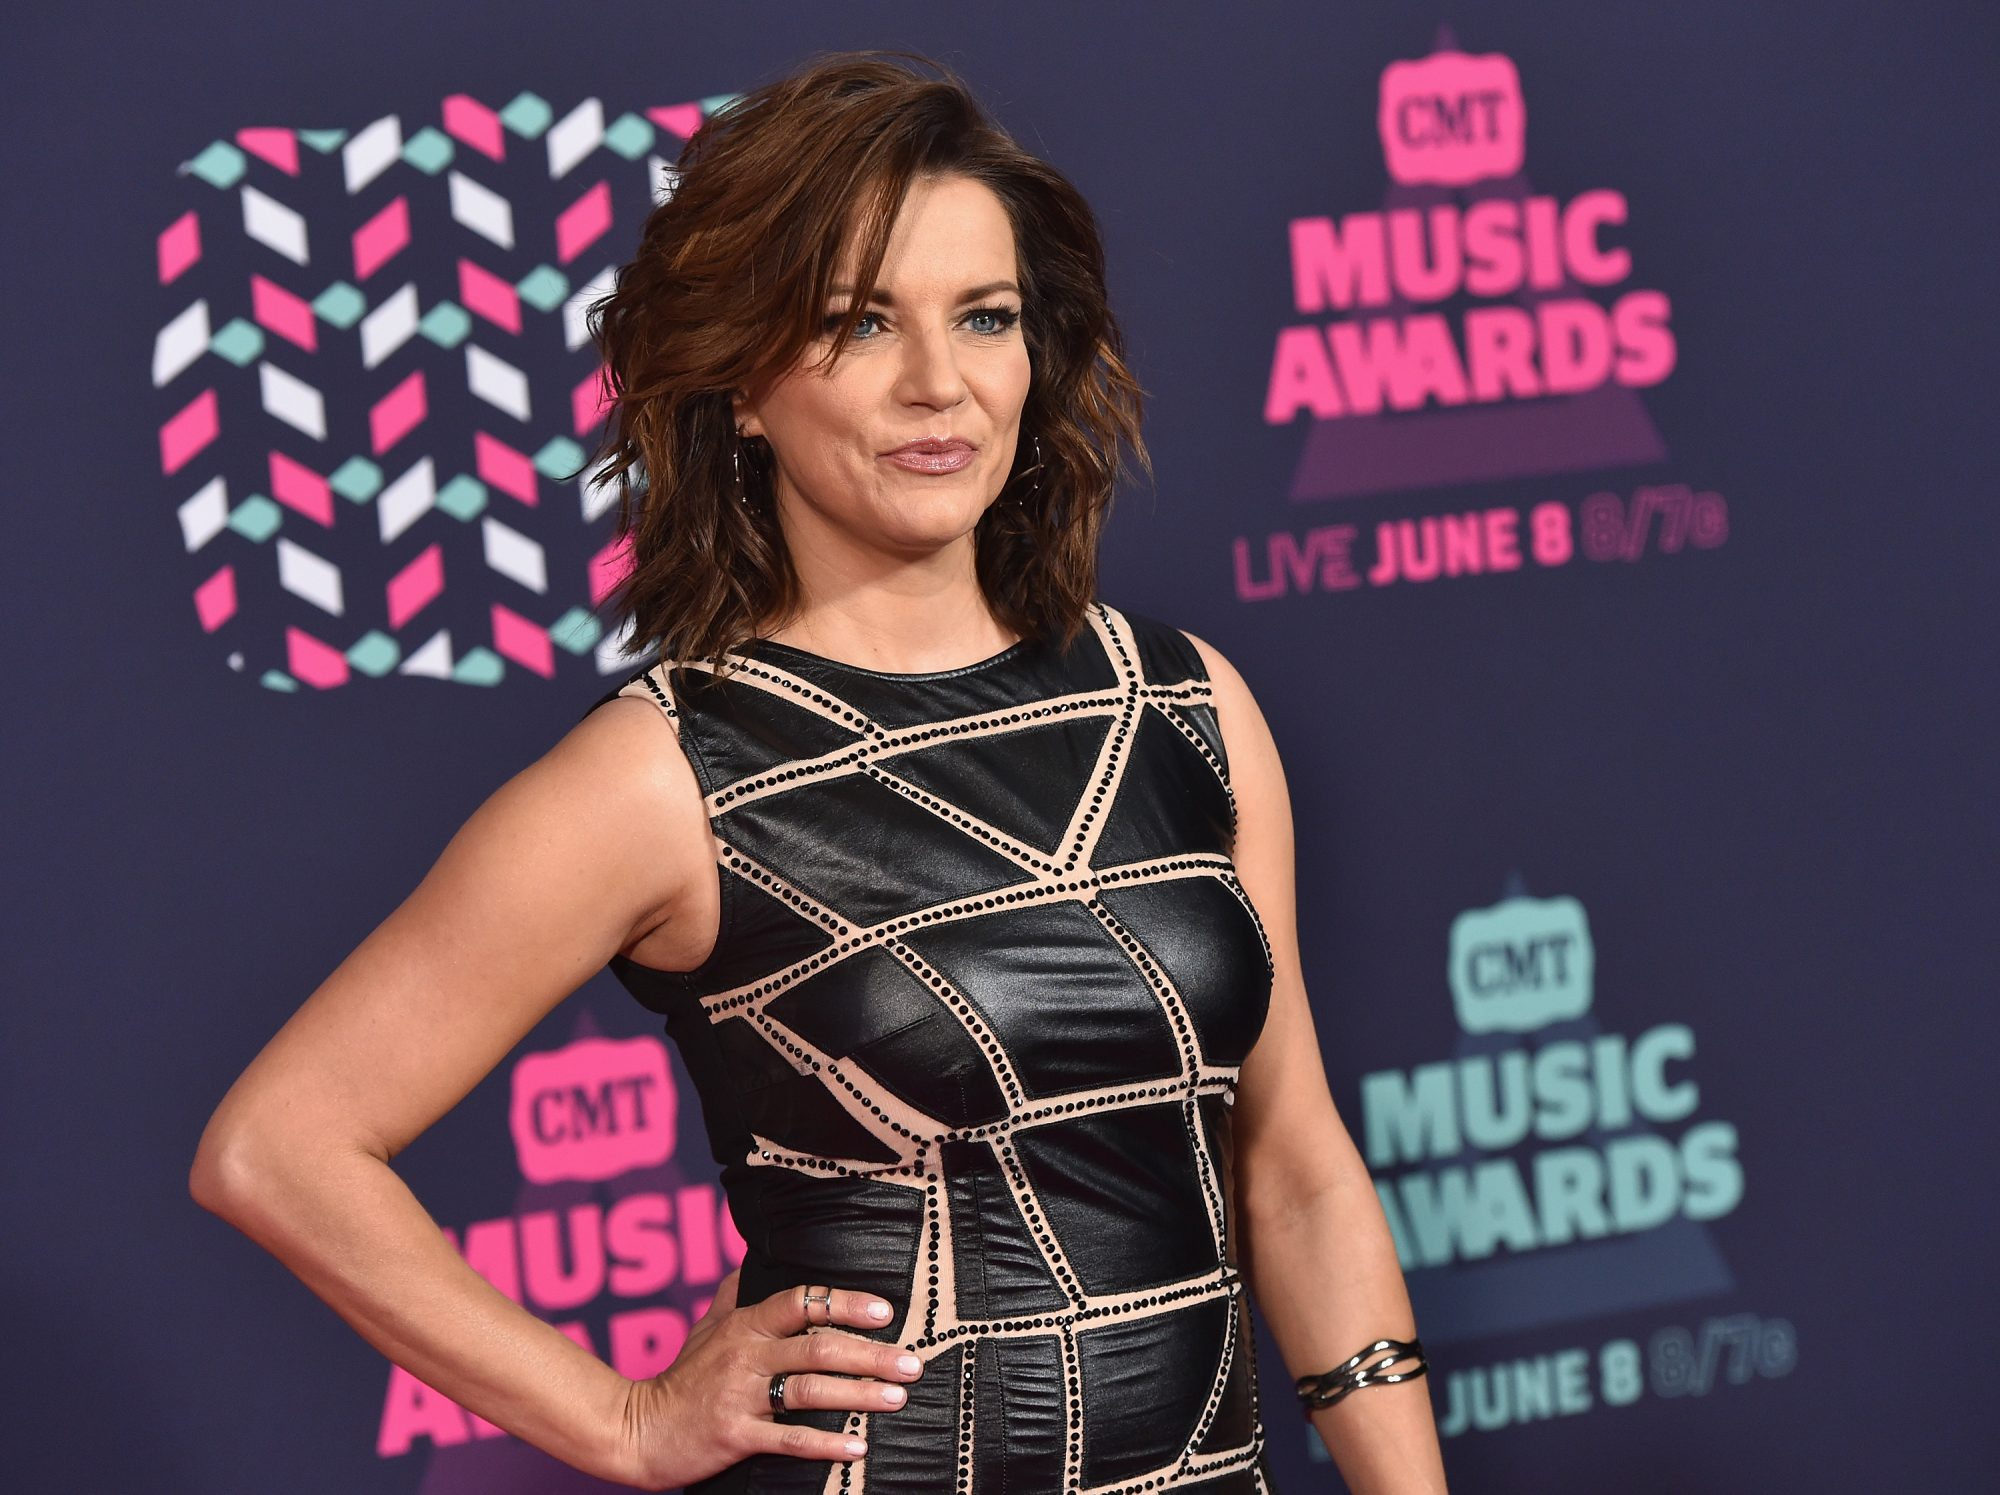 Martina McBride attends the 2016 CMT Music awards at the Bridgestone Arena on June 8, 2016 in Nashville, Tennessee.